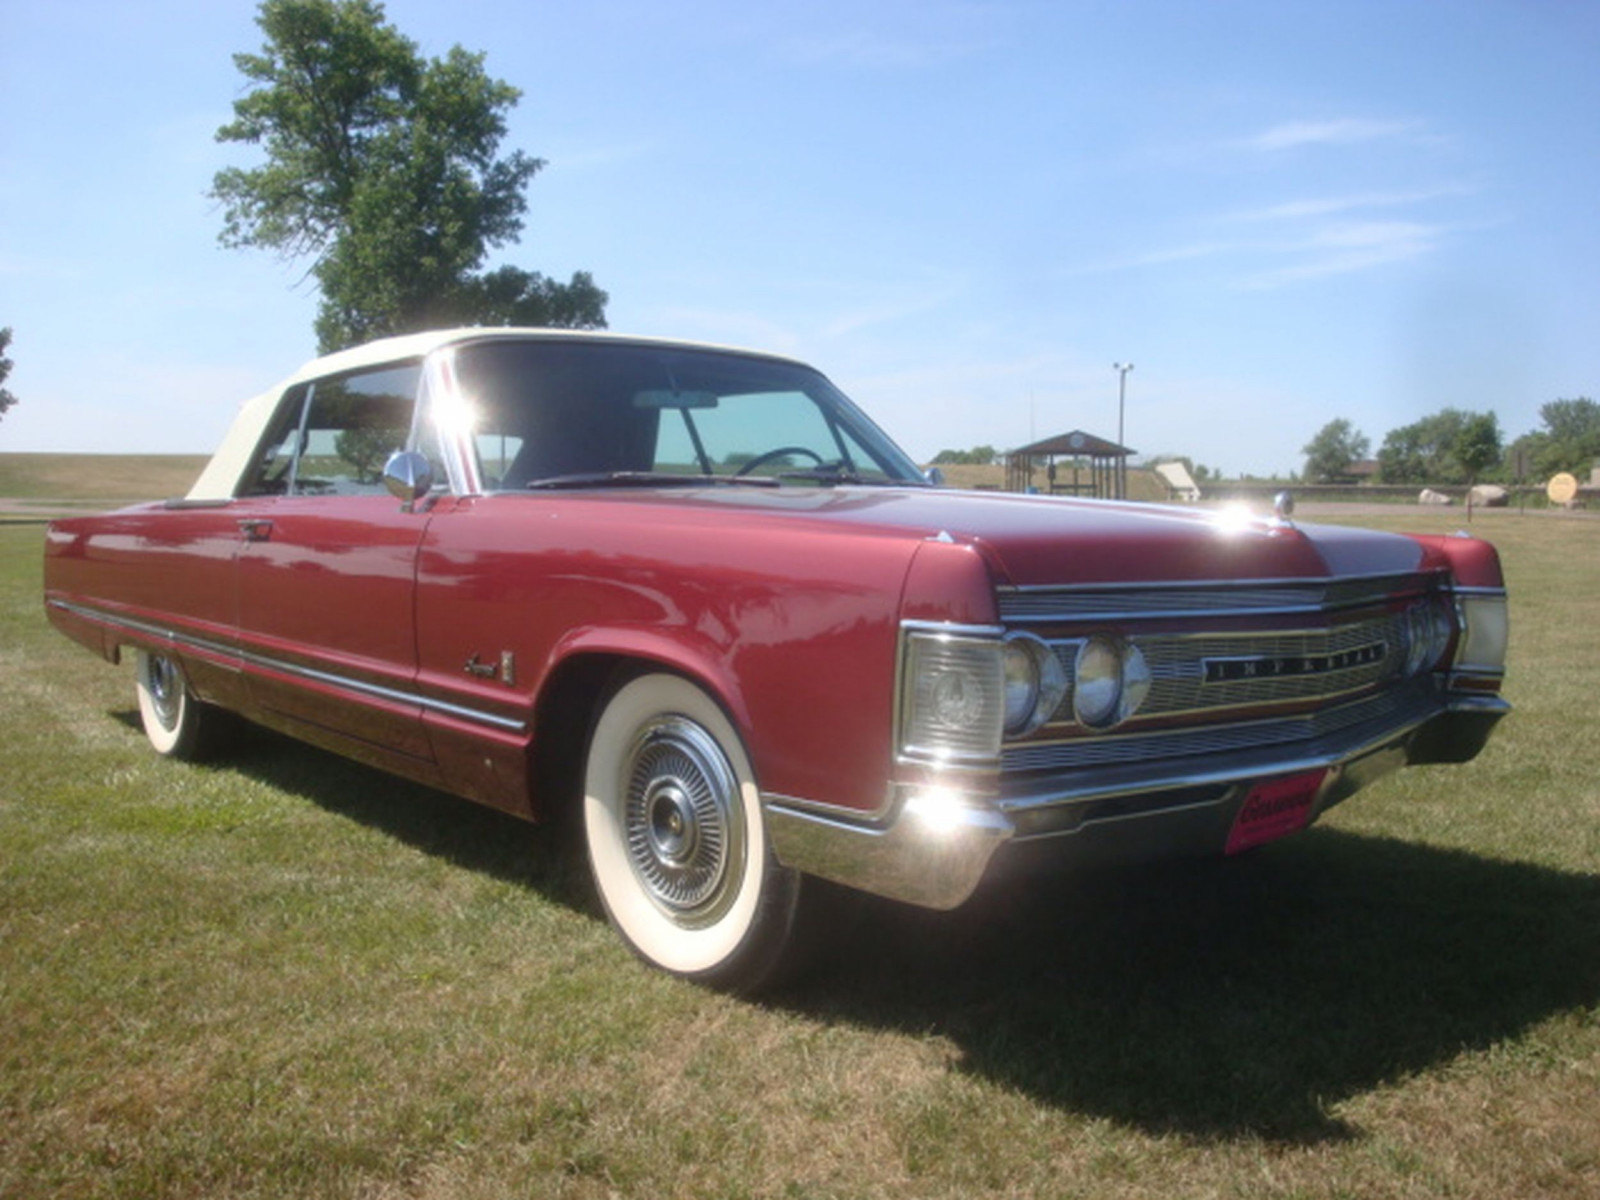 1967 Chrysler Imperial Convertible - Image 10